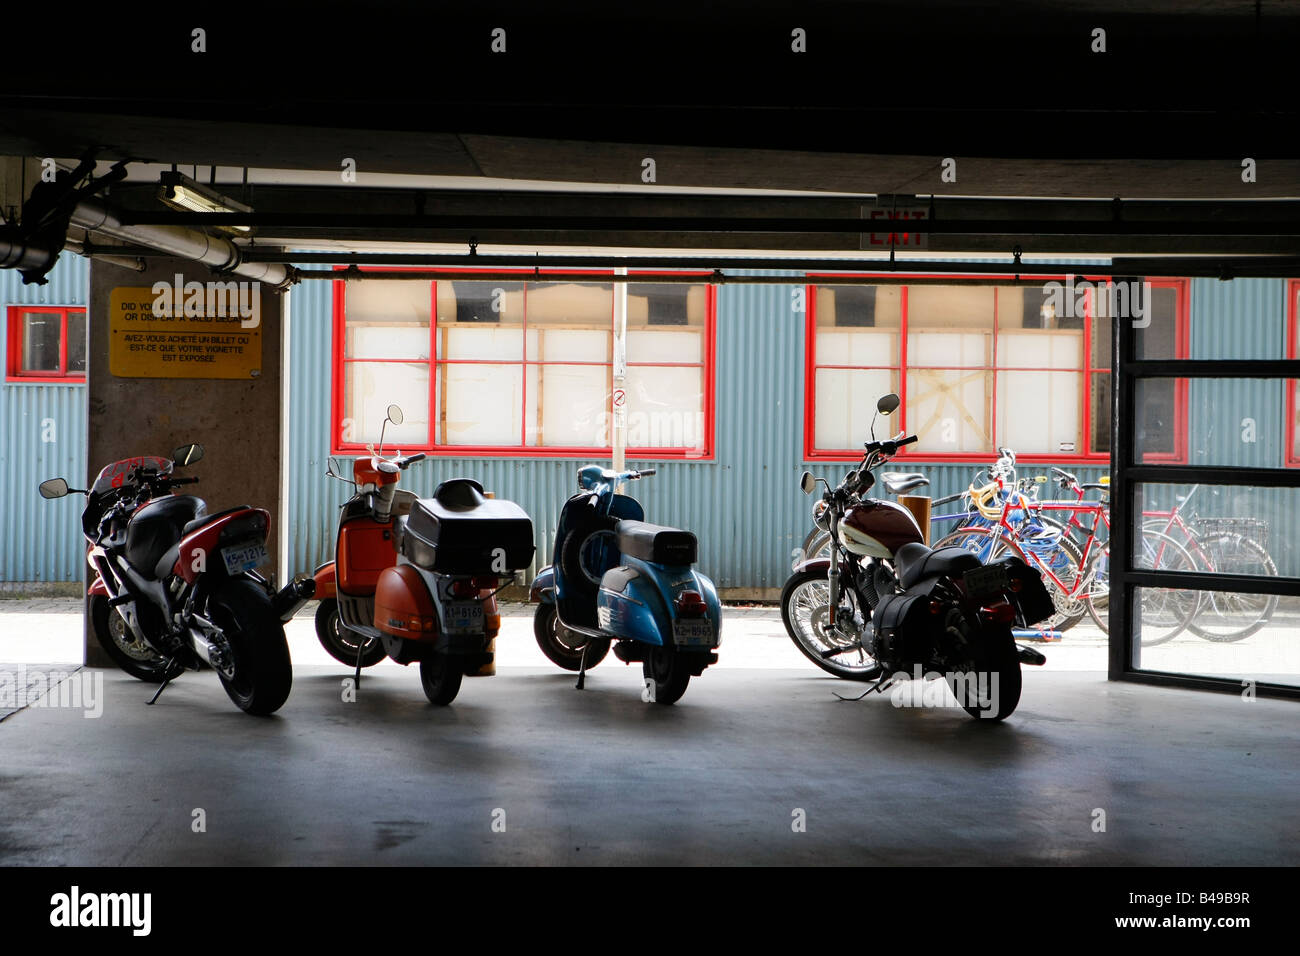 motor scooter and motor cycles parked in a garage - Stock Image